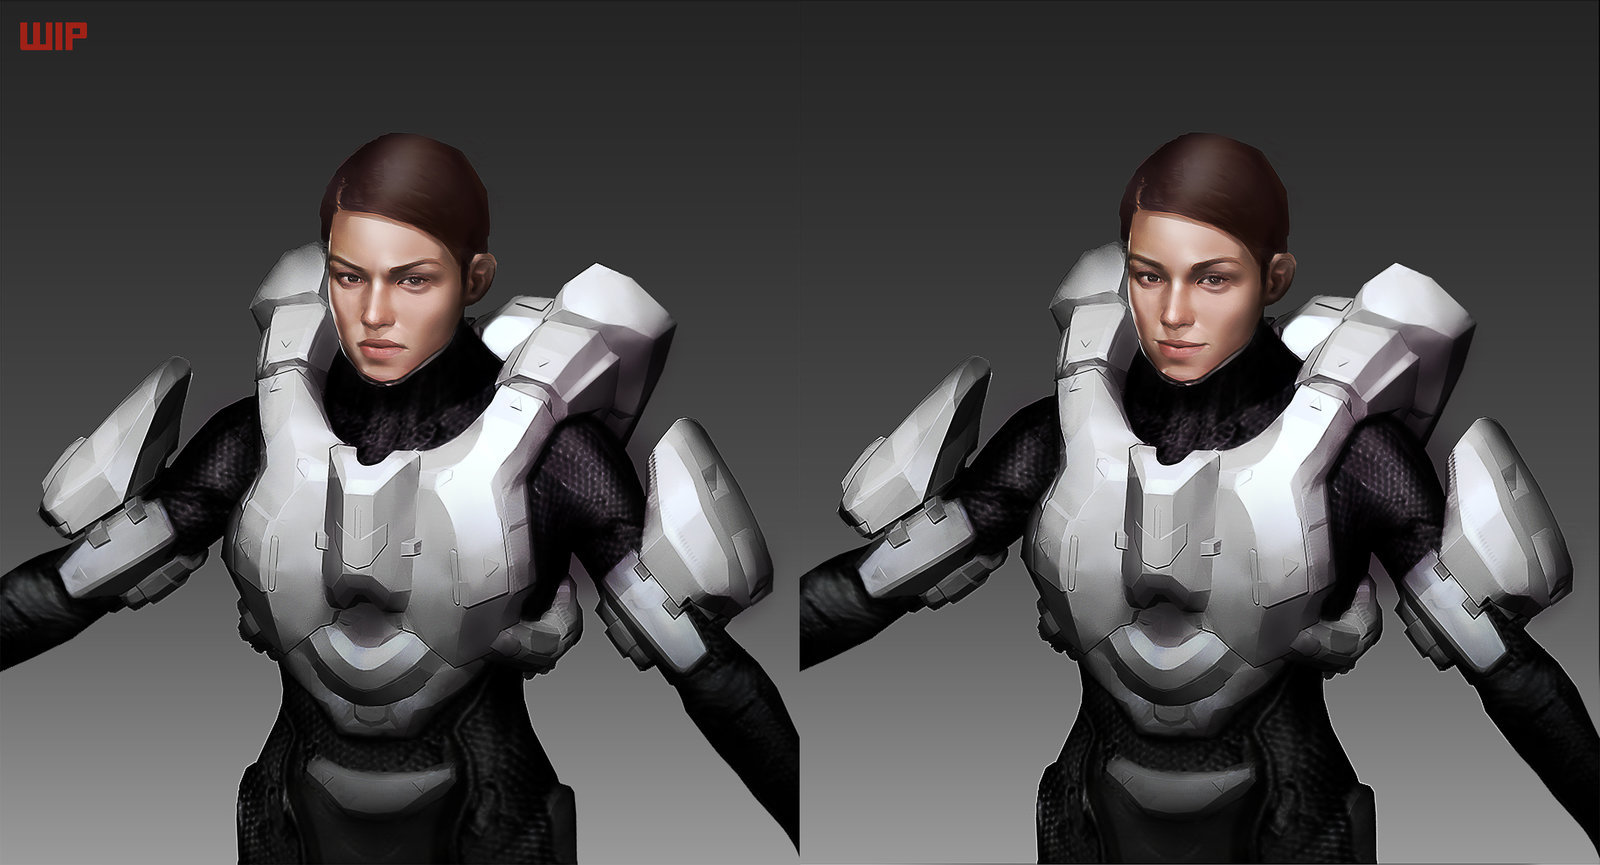 David kaye halo 4 sarah palmer commission wip by katmachiavelli d88b36w